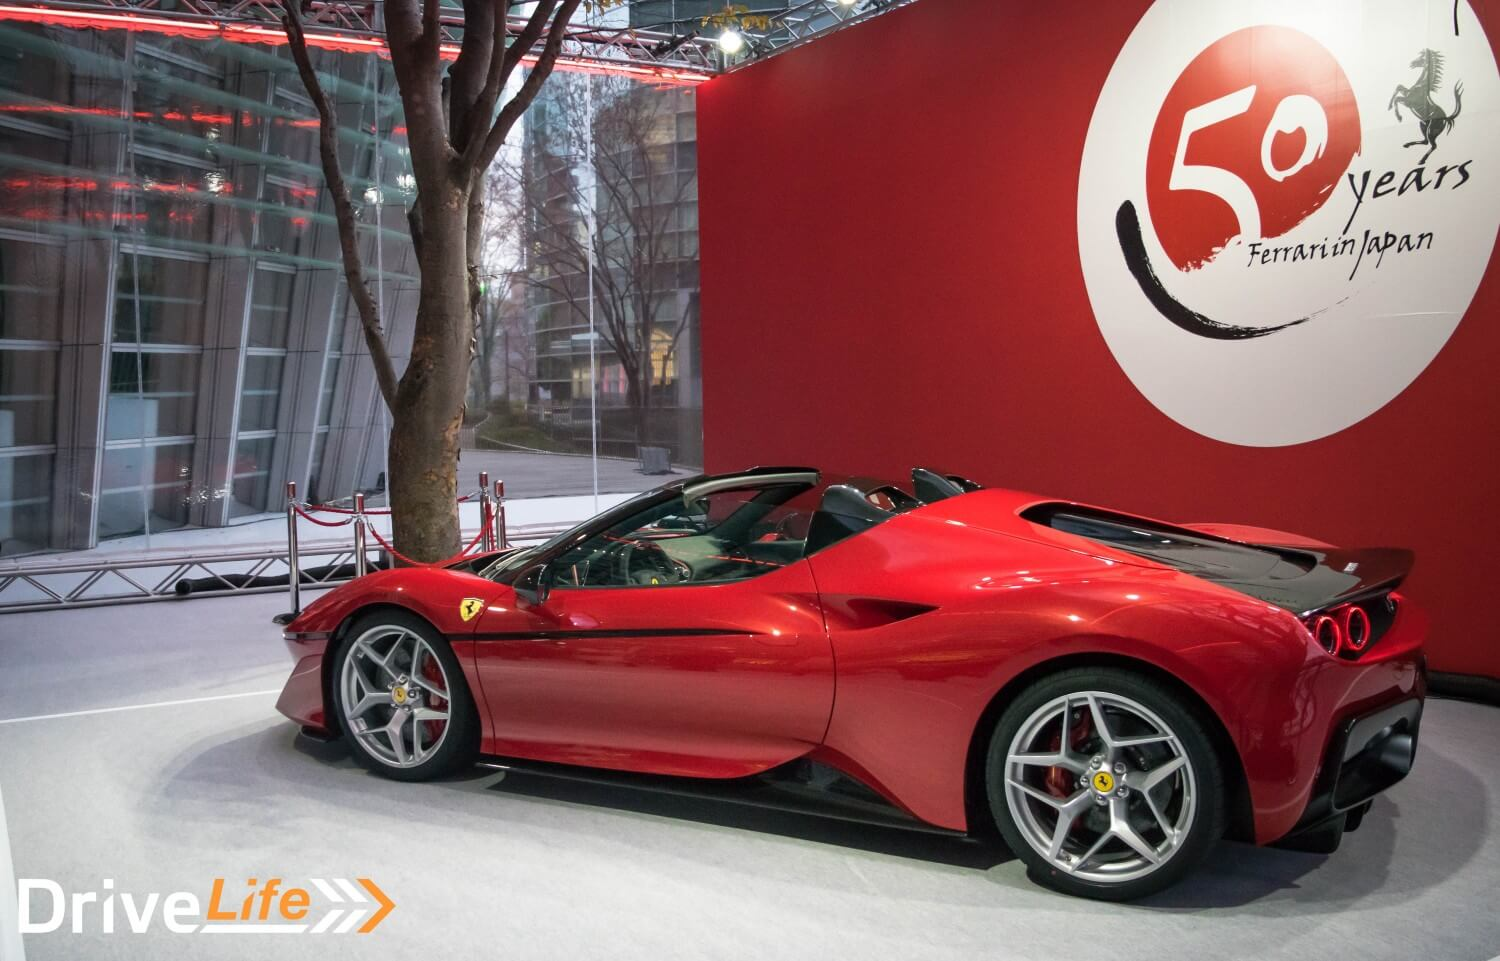 drivelife-nz-ferrari-j50-launch-07